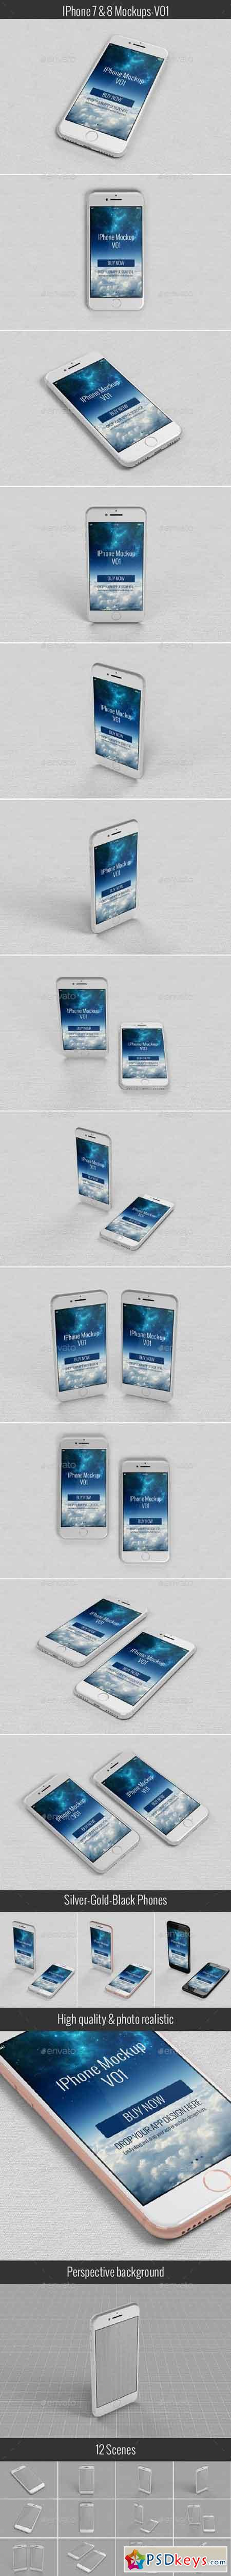 Phone Mock-Up Templates 20733120